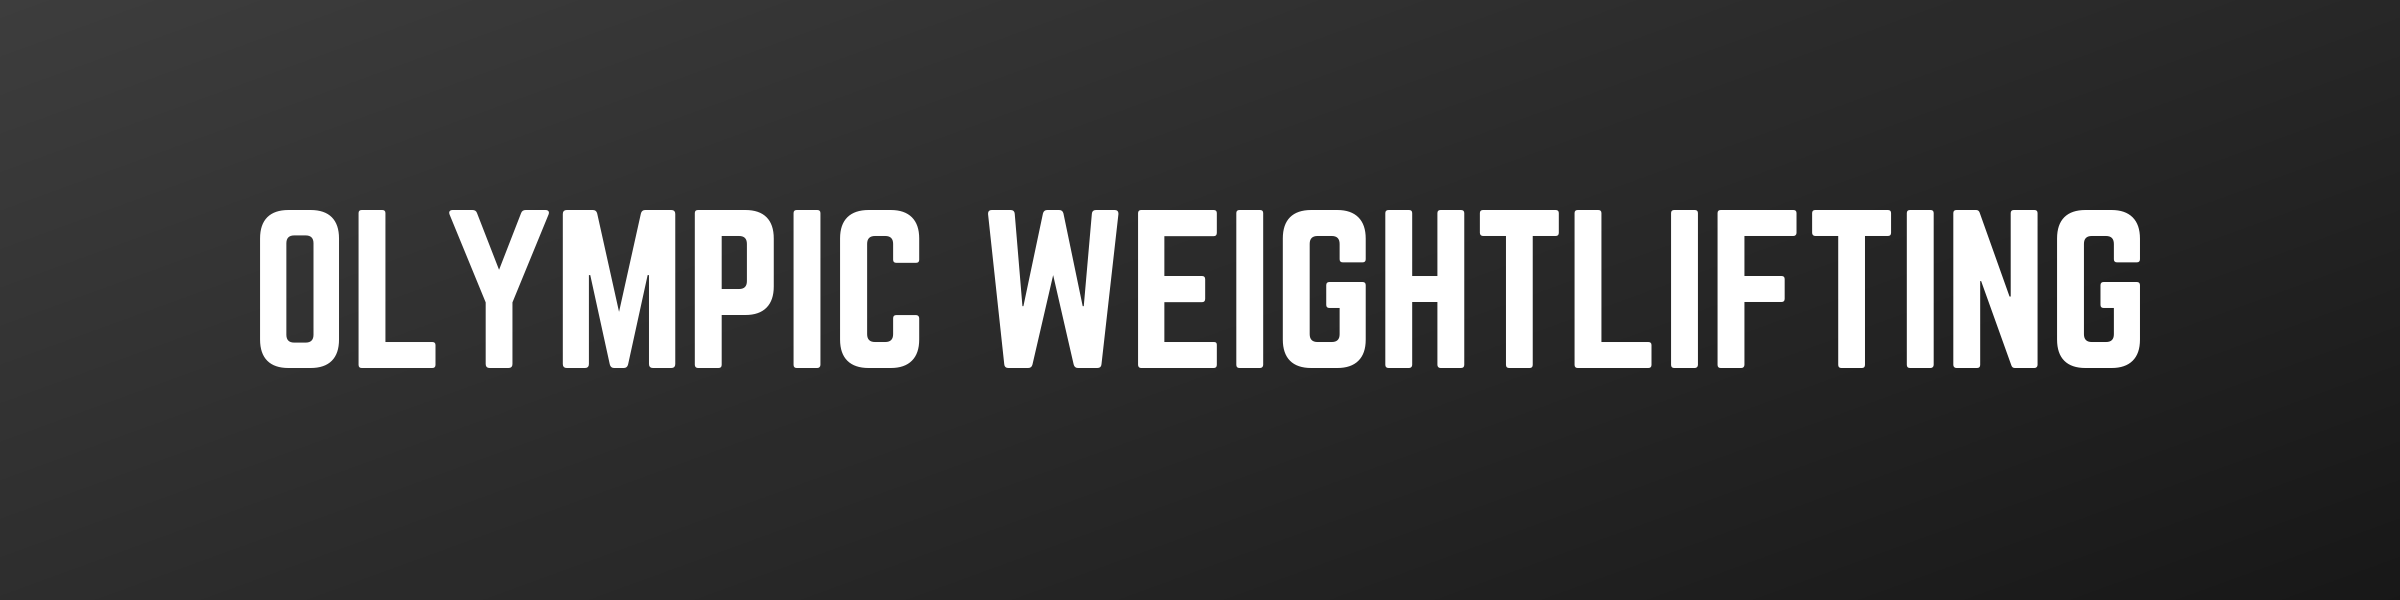 olympic weightlifting programs